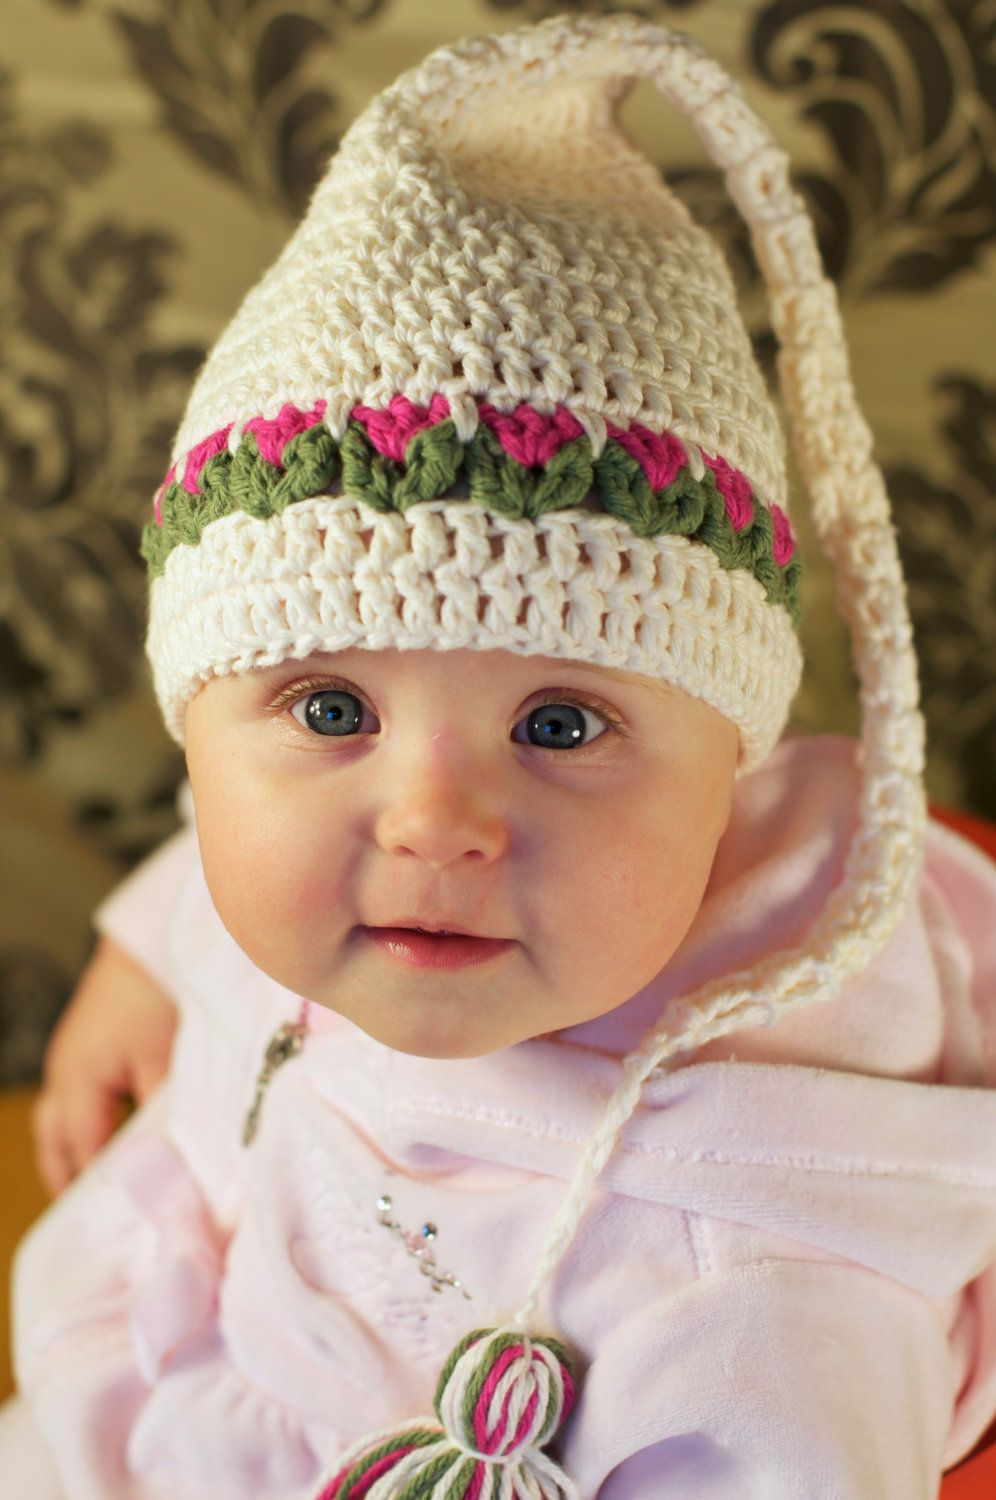 Tulips Hat Crochet Pattern for Babies and Kids.